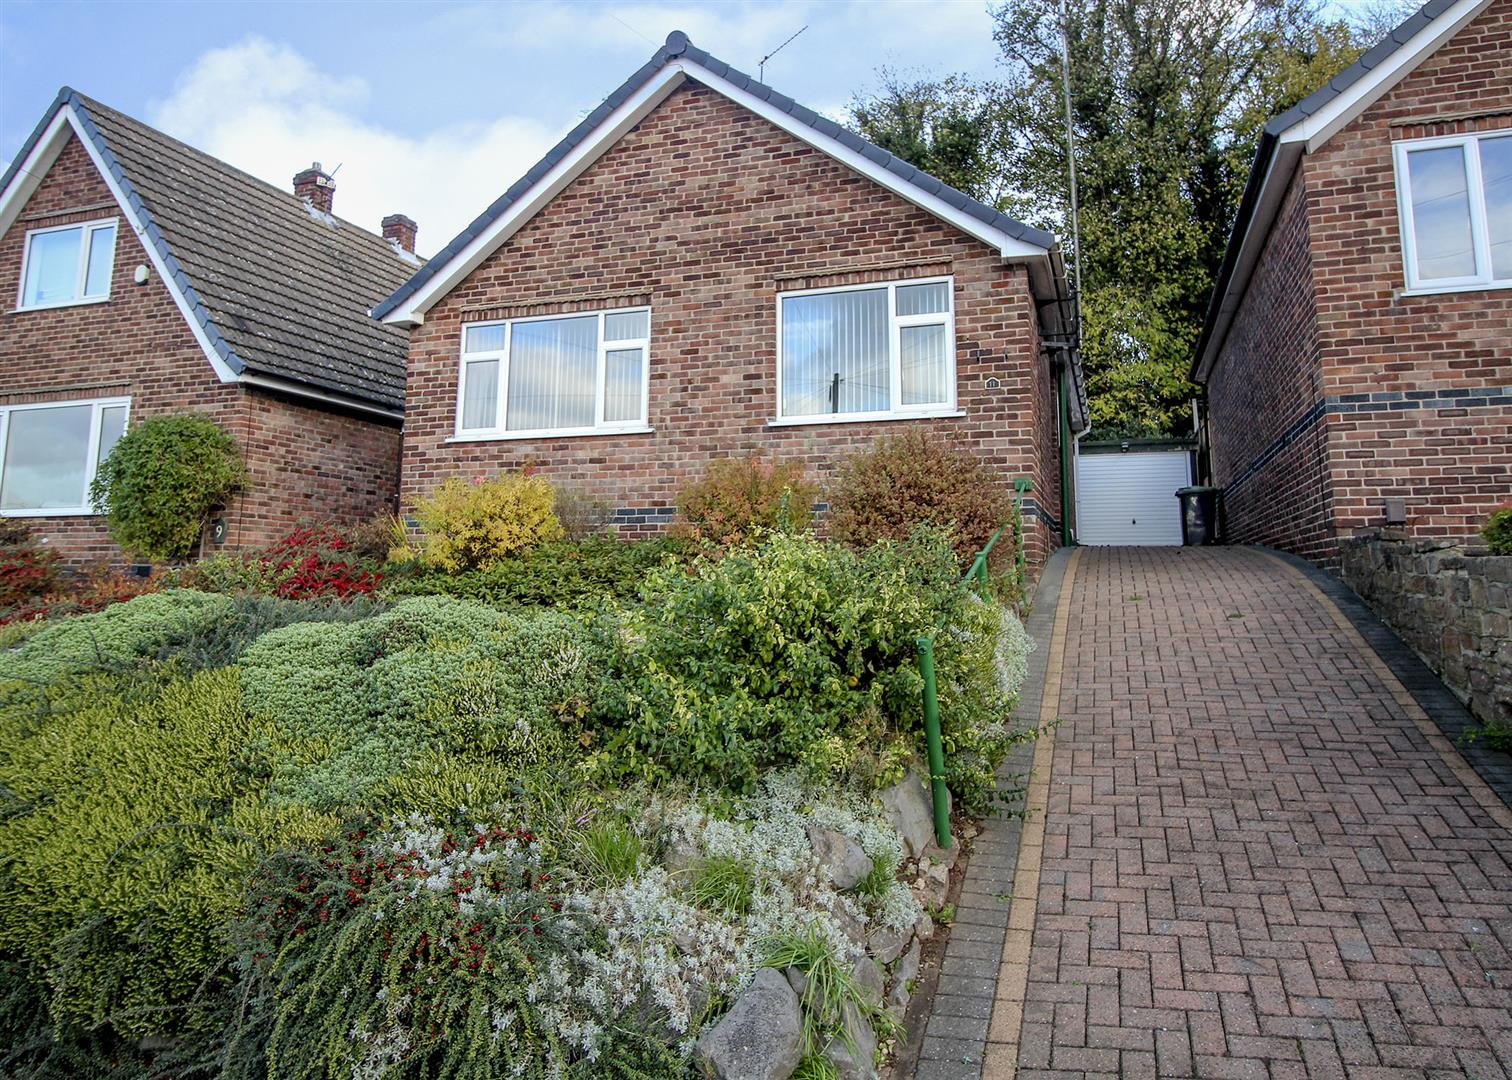 2 Bedrooms Detached Bungalow for sale in Blake Road, Stapleford, Nottingham